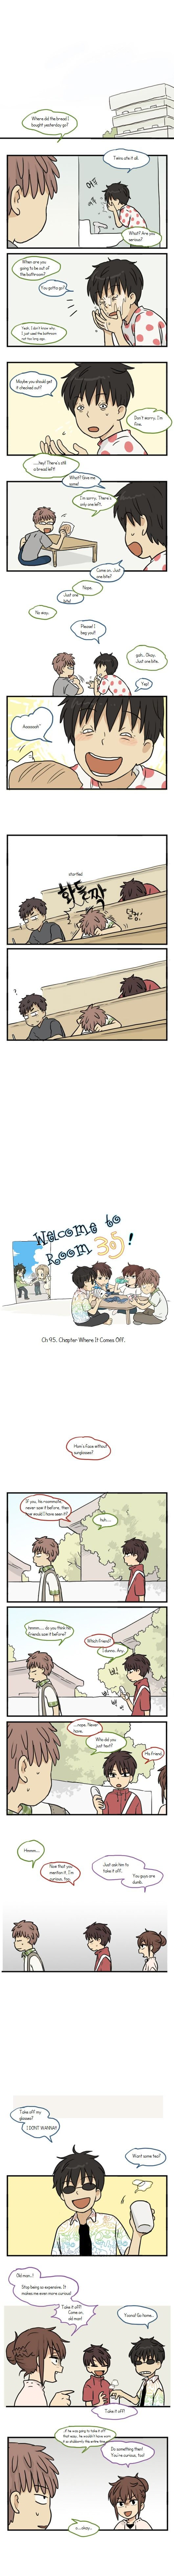 Welcome to Room #305! 95 Page 1